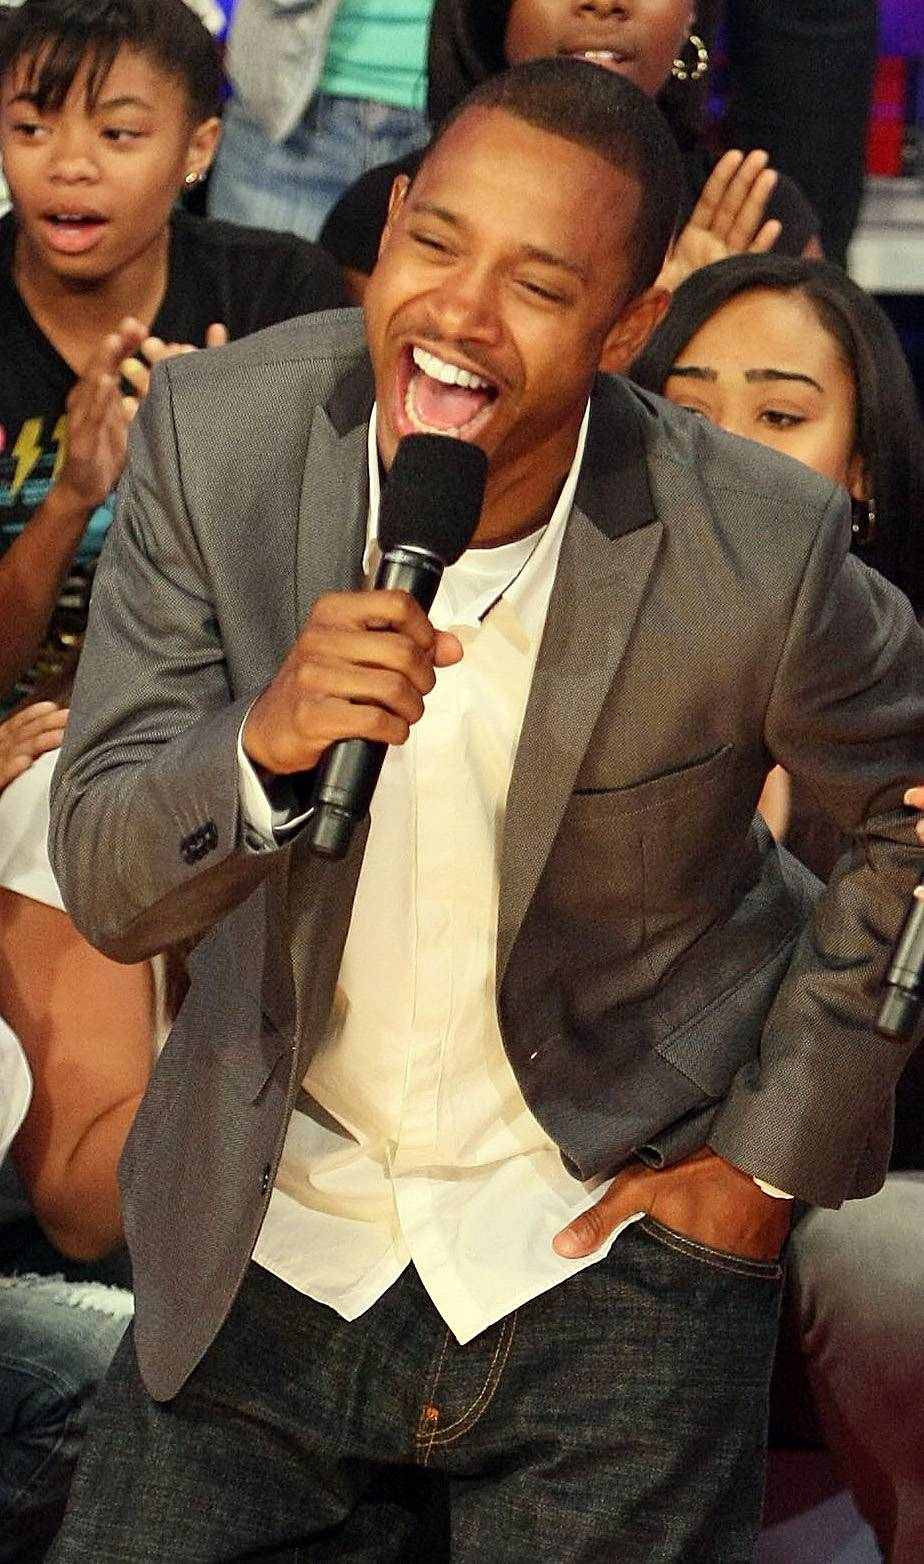 Son of Thunder and Lightning - Terrence J is a proud member of Omega Psi Phi Fraternity, Inc.  (Photo: Andrew H. Walker/Getty Images)